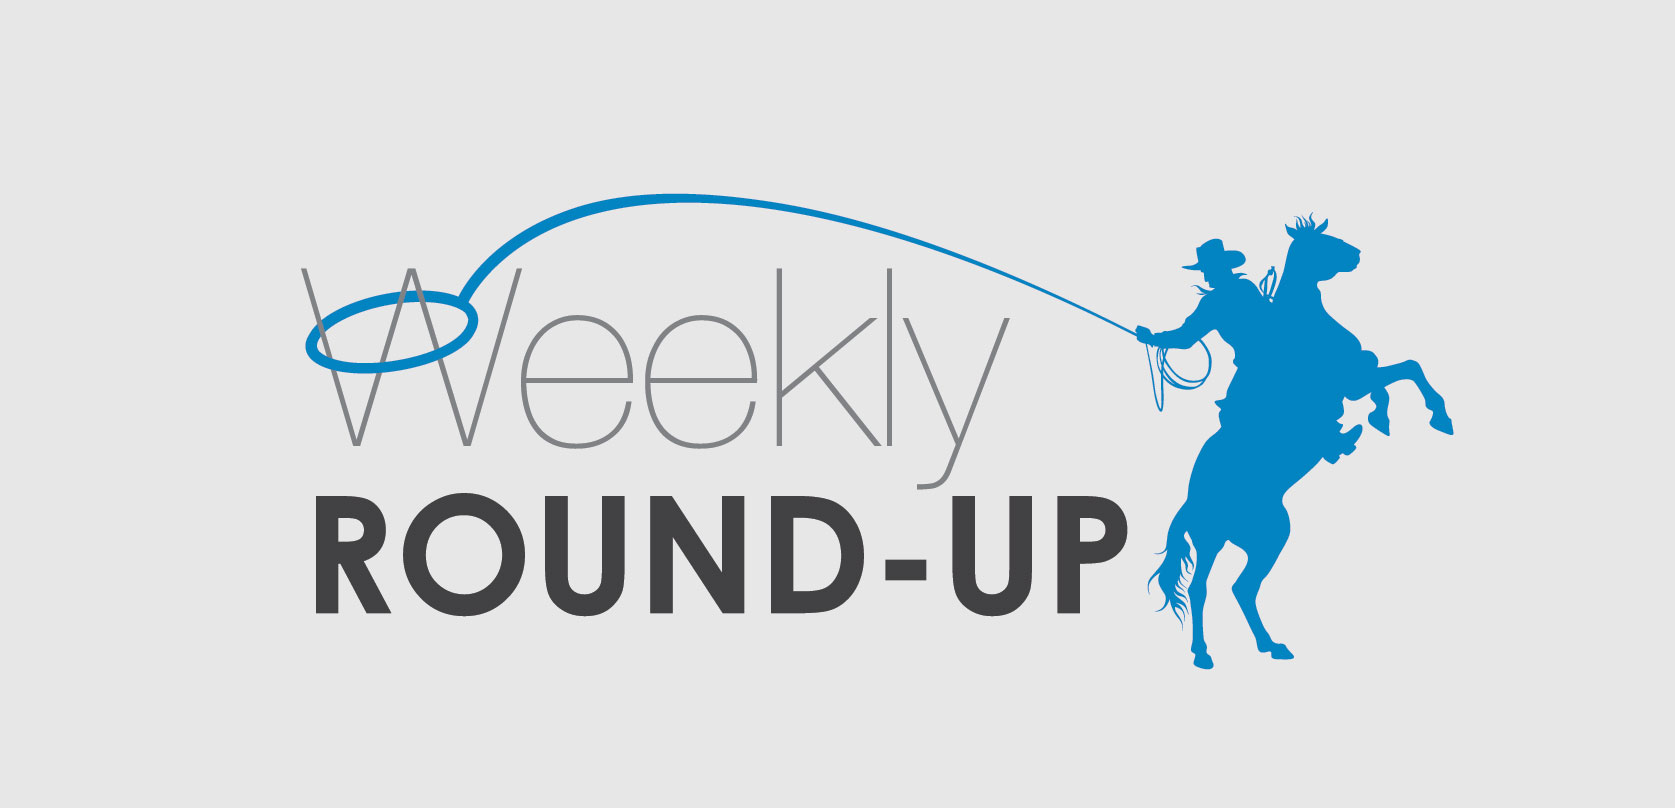 Weekly Round-Up, best blogs, best leadership blogs, the grossman group, david grossman, communication tips